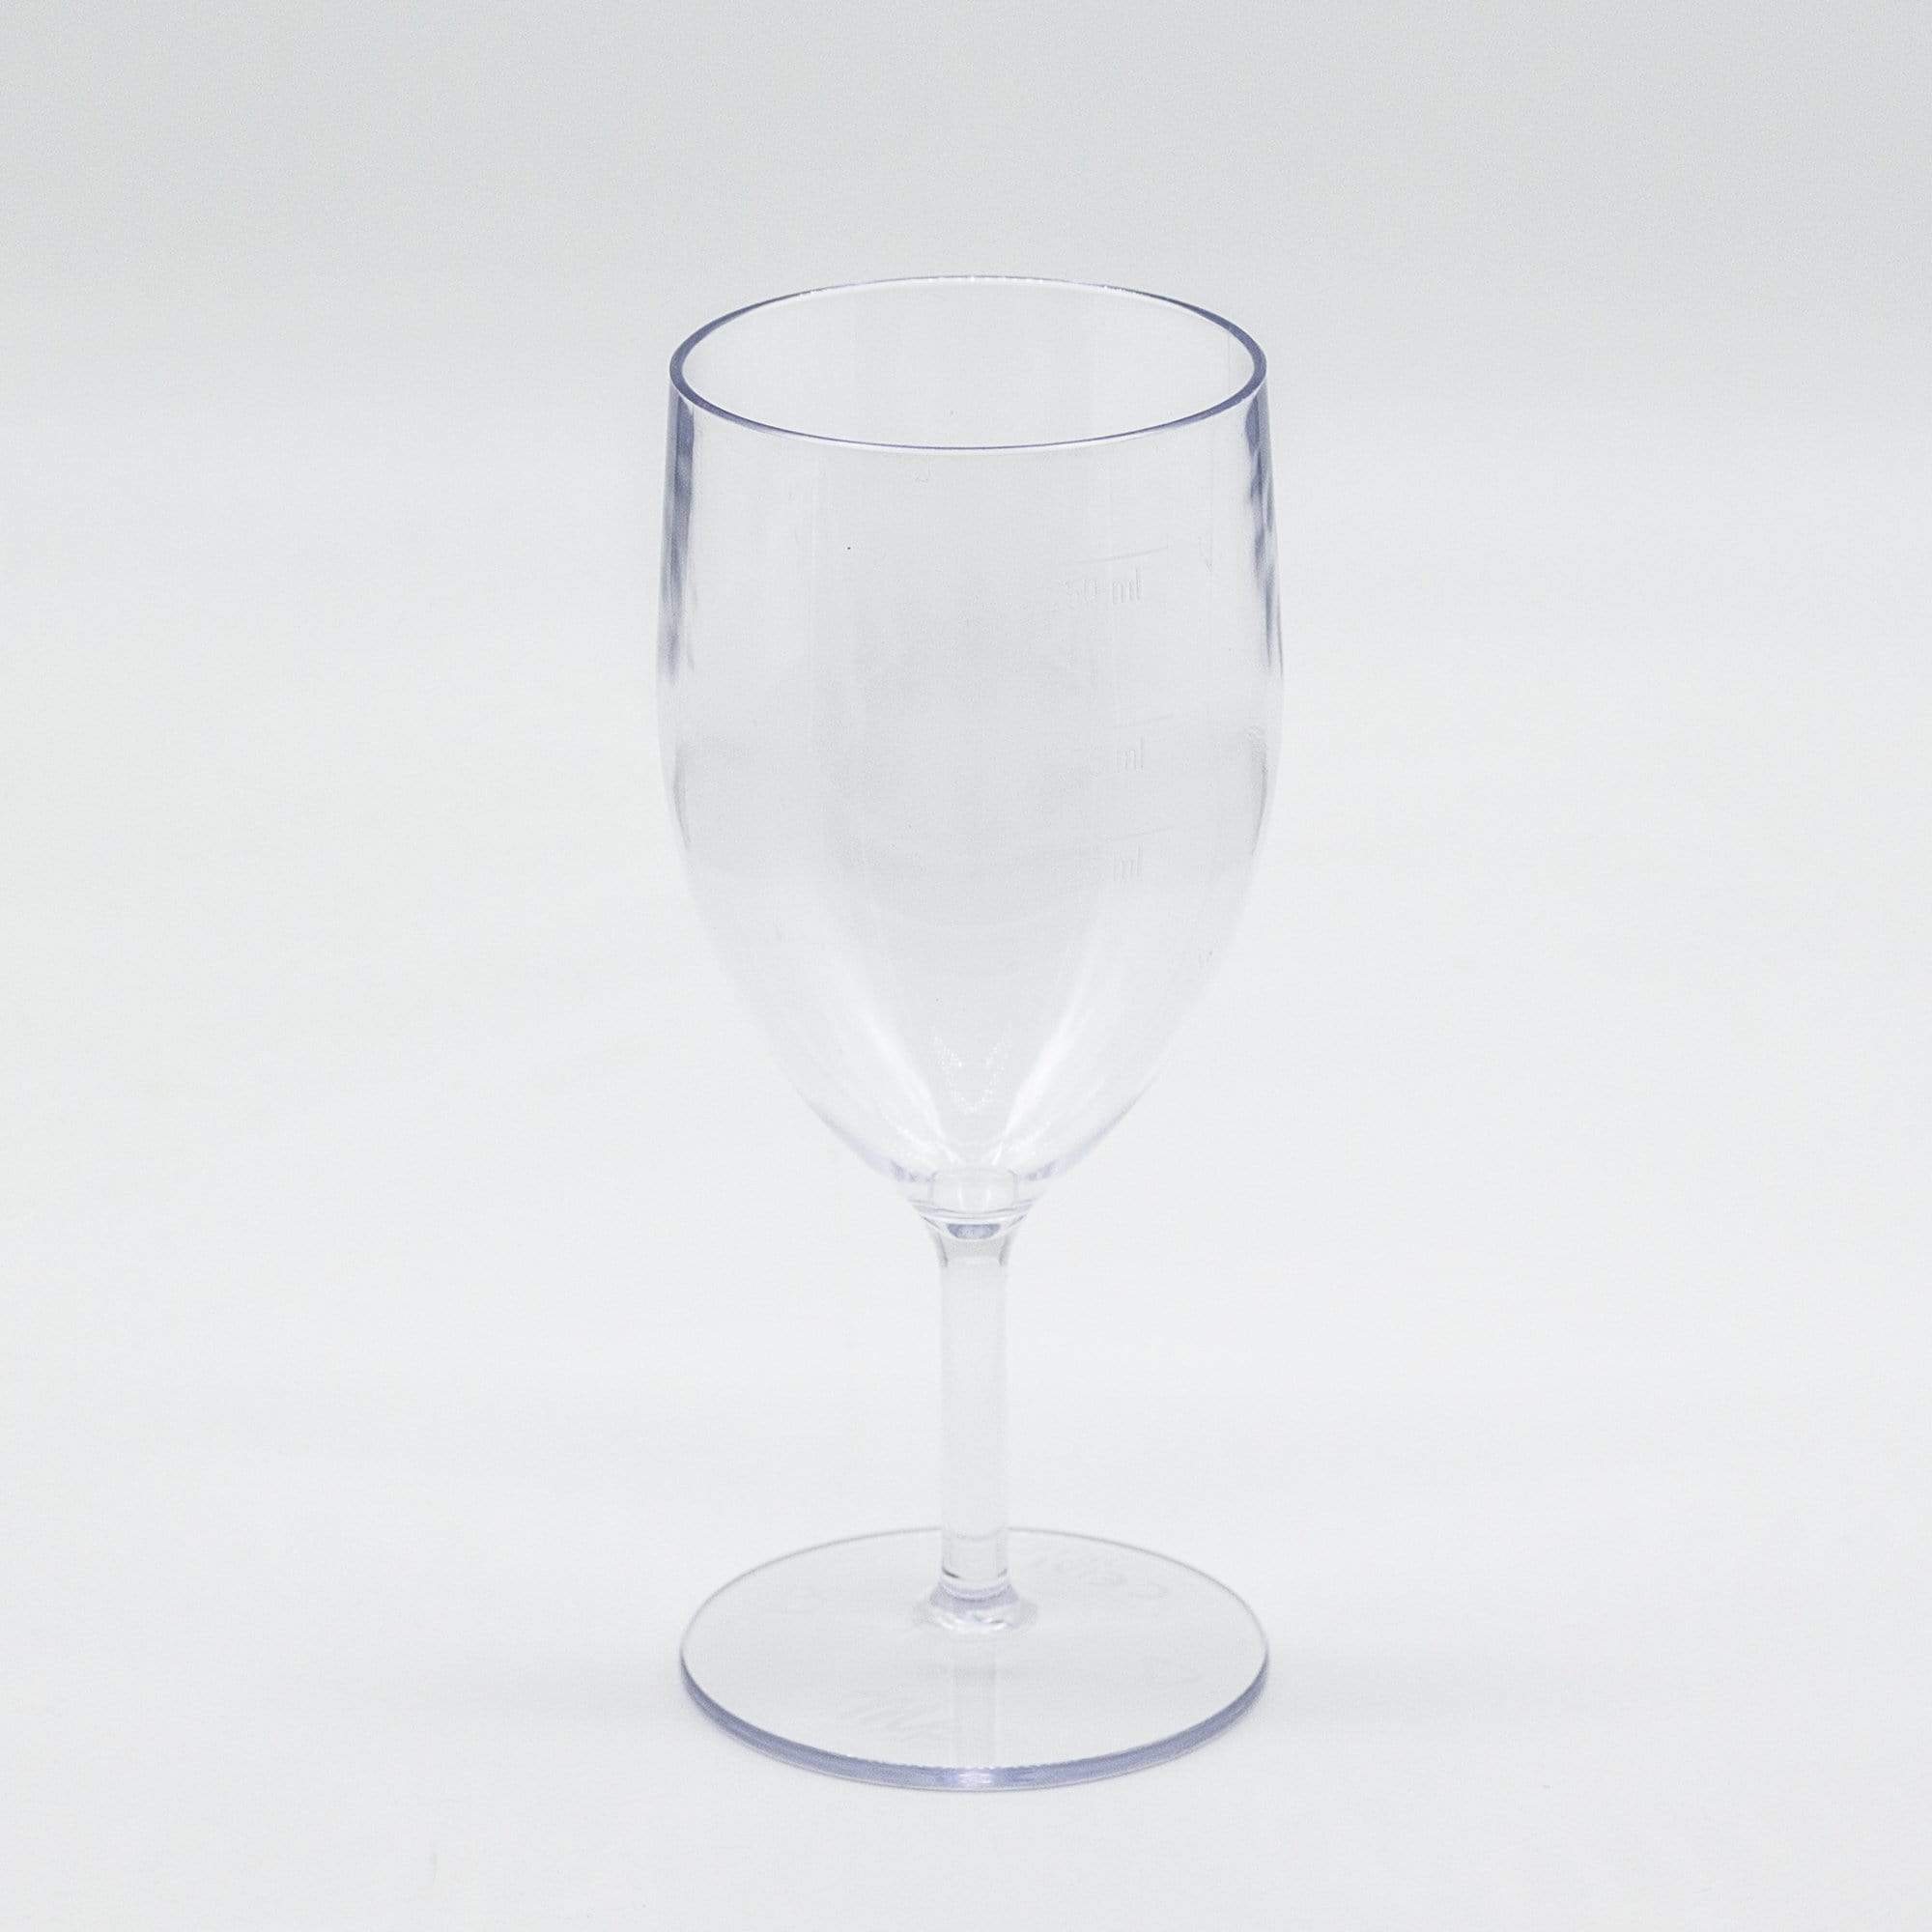 Reusable and Recylclable Plastic Wine Glasses